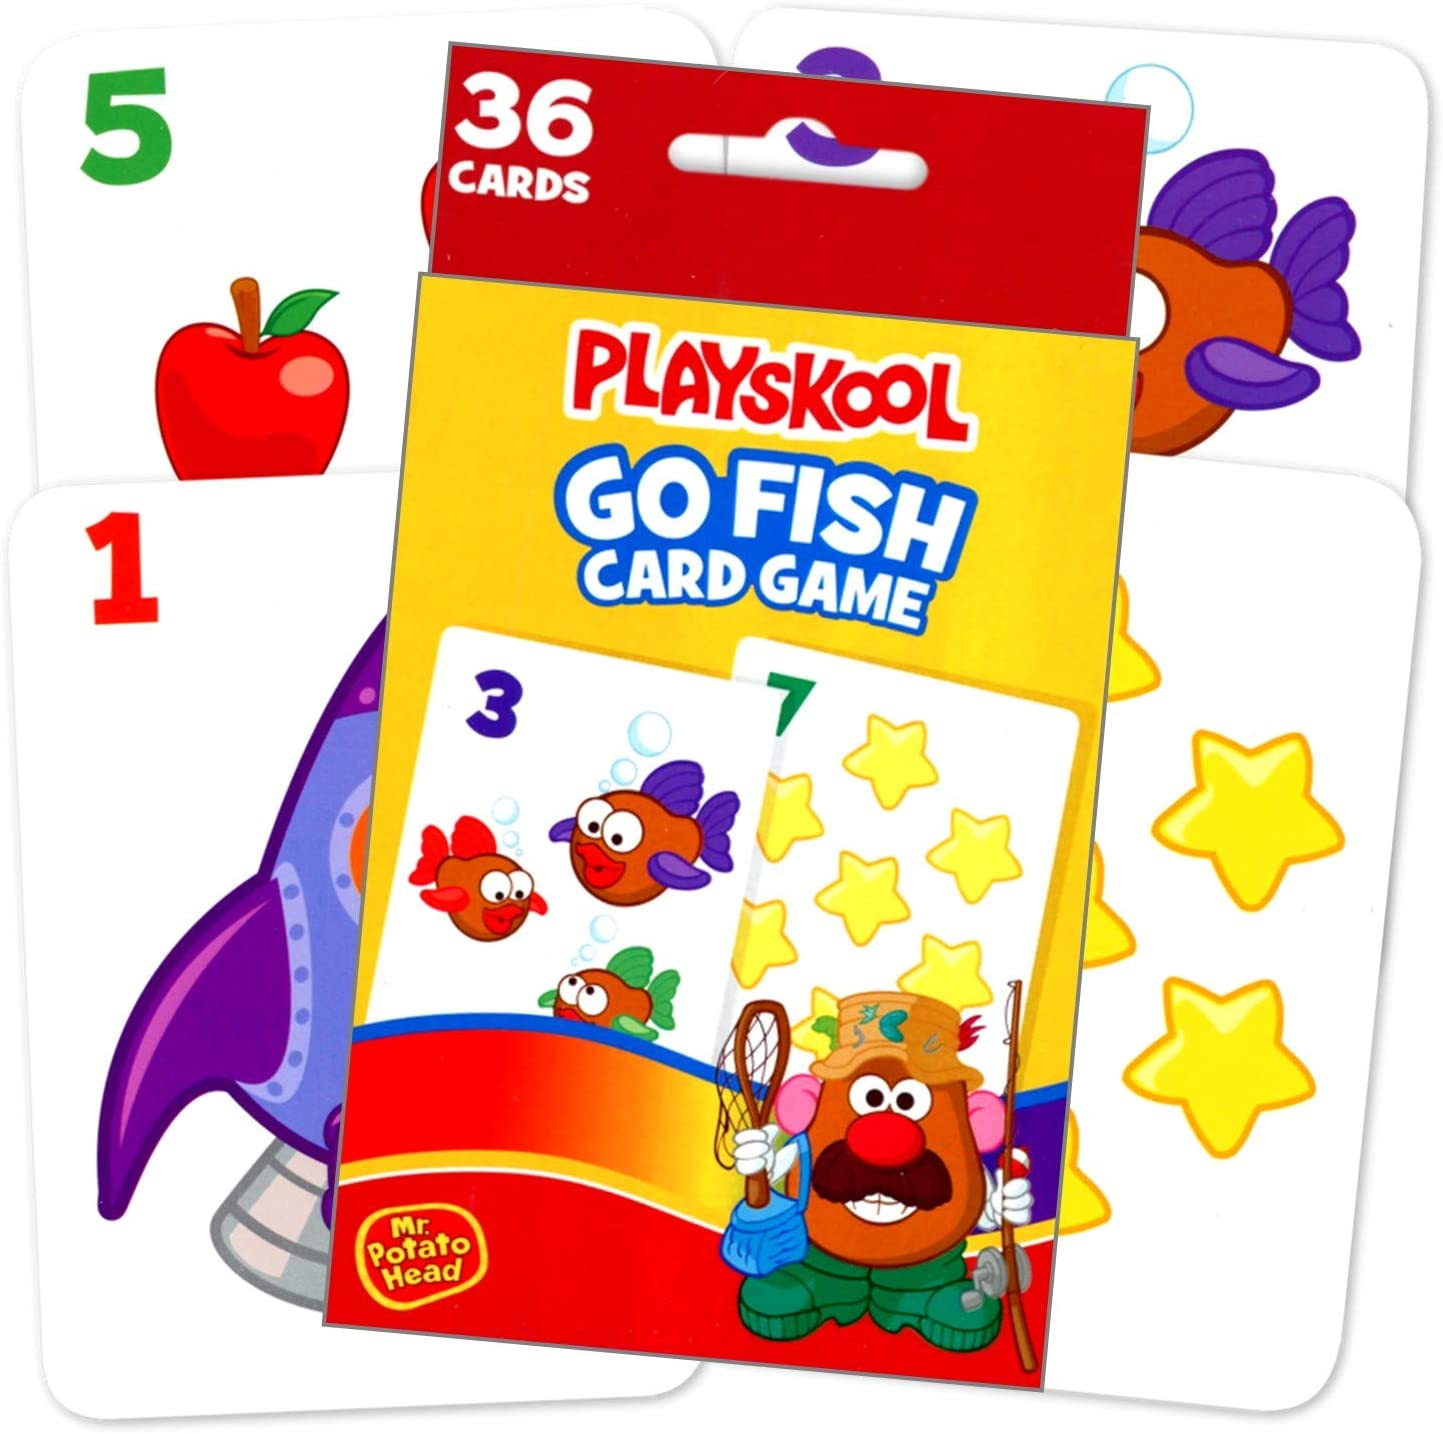 Flash Cards Playskool Learning Educational and Games for Kids Memory Match Card Game